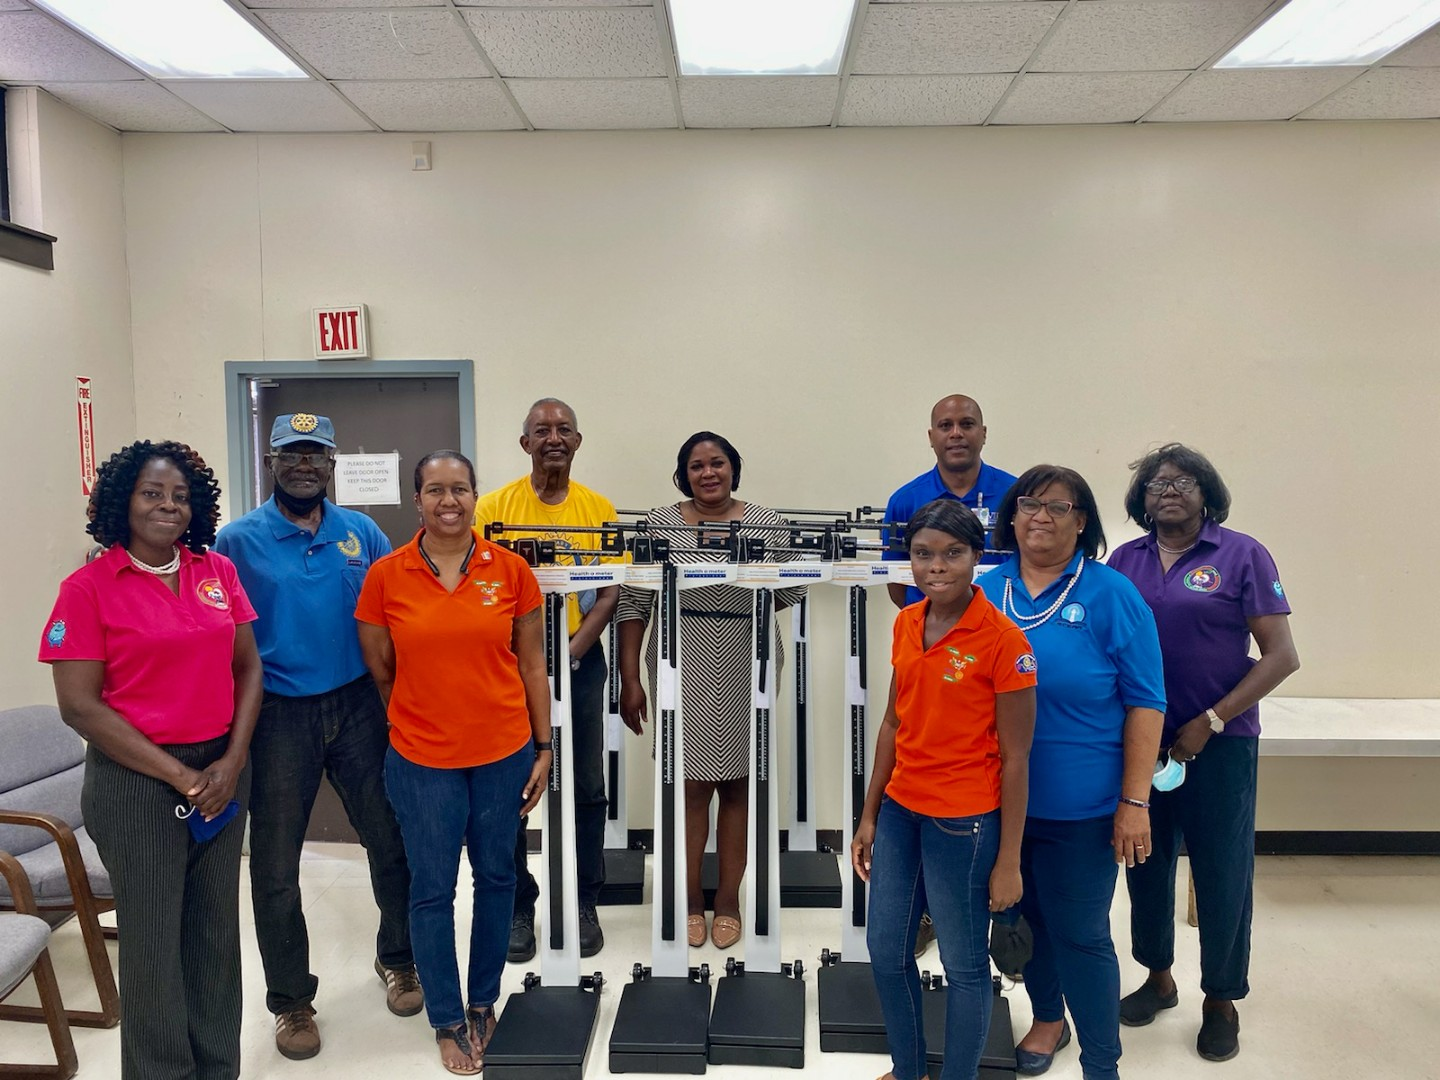 Rotary Club of St. Croix West Donates 15 Scales To St. Croix Schools for Health Program